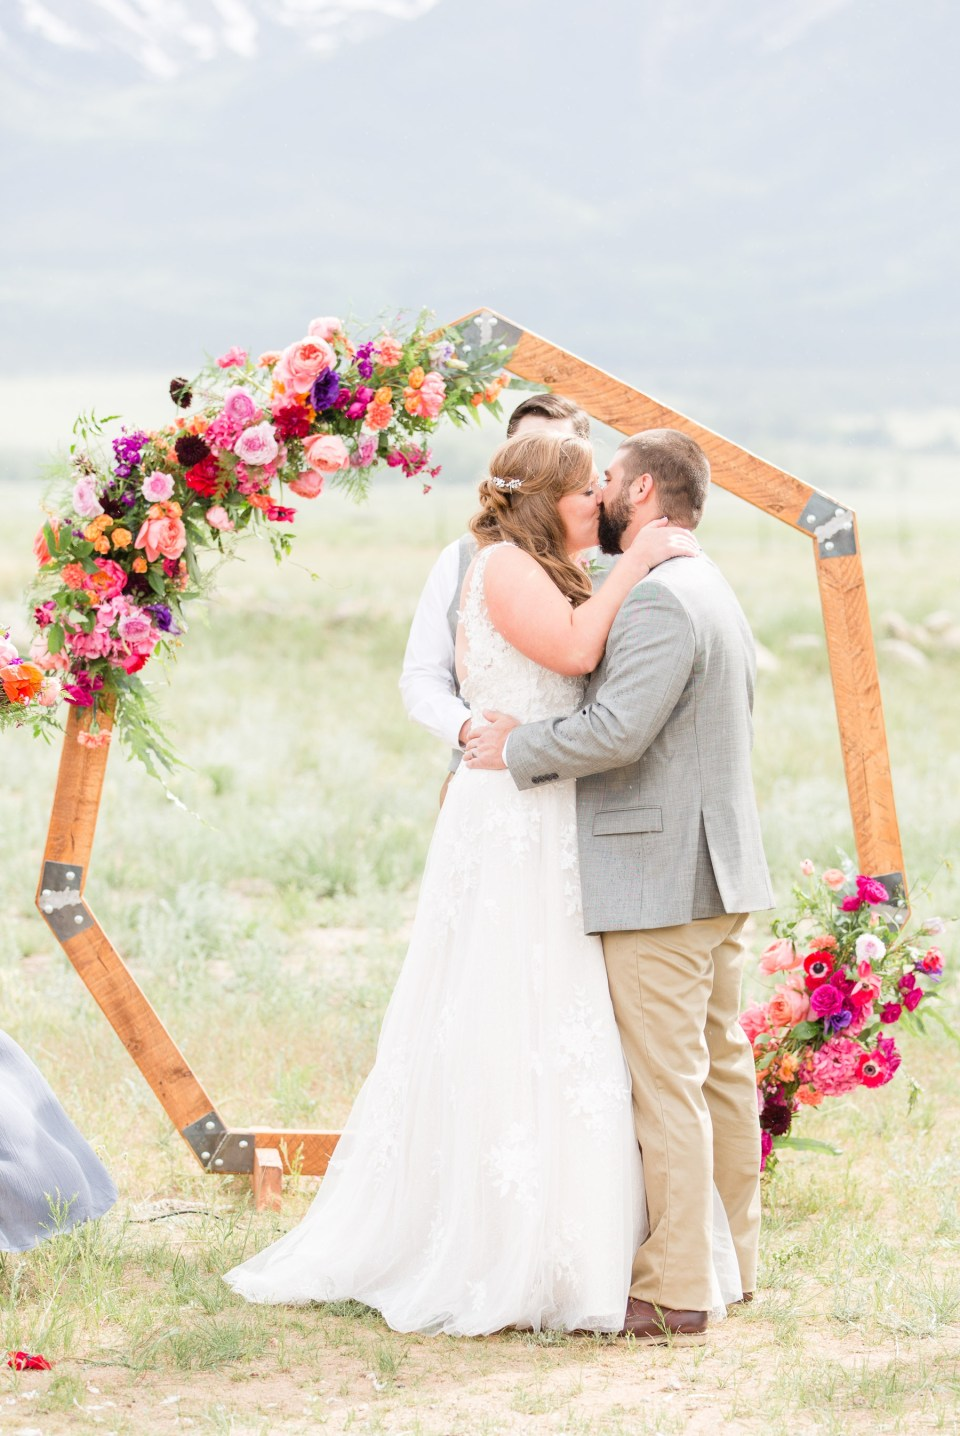 First kiss in front of a hexagon ceremony arch with colorful flowers.